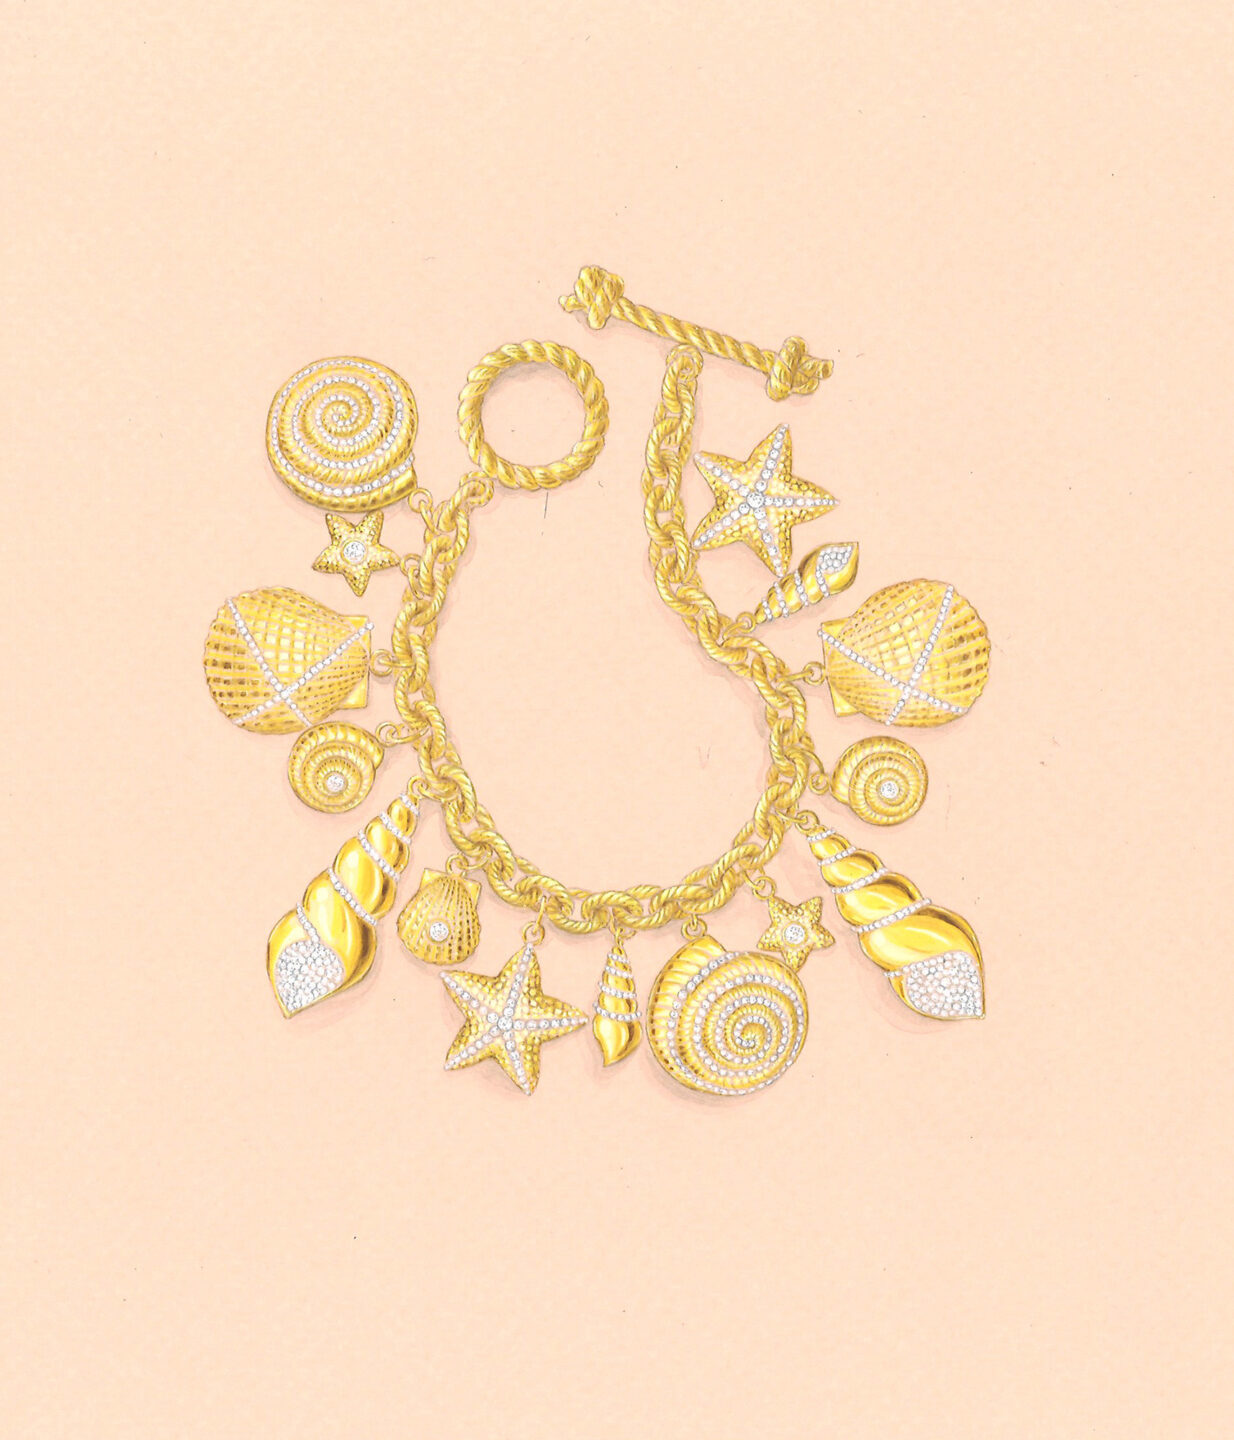 mish_jewelry_product_Cabana-Gld-Chrm-BR-Editorial-2